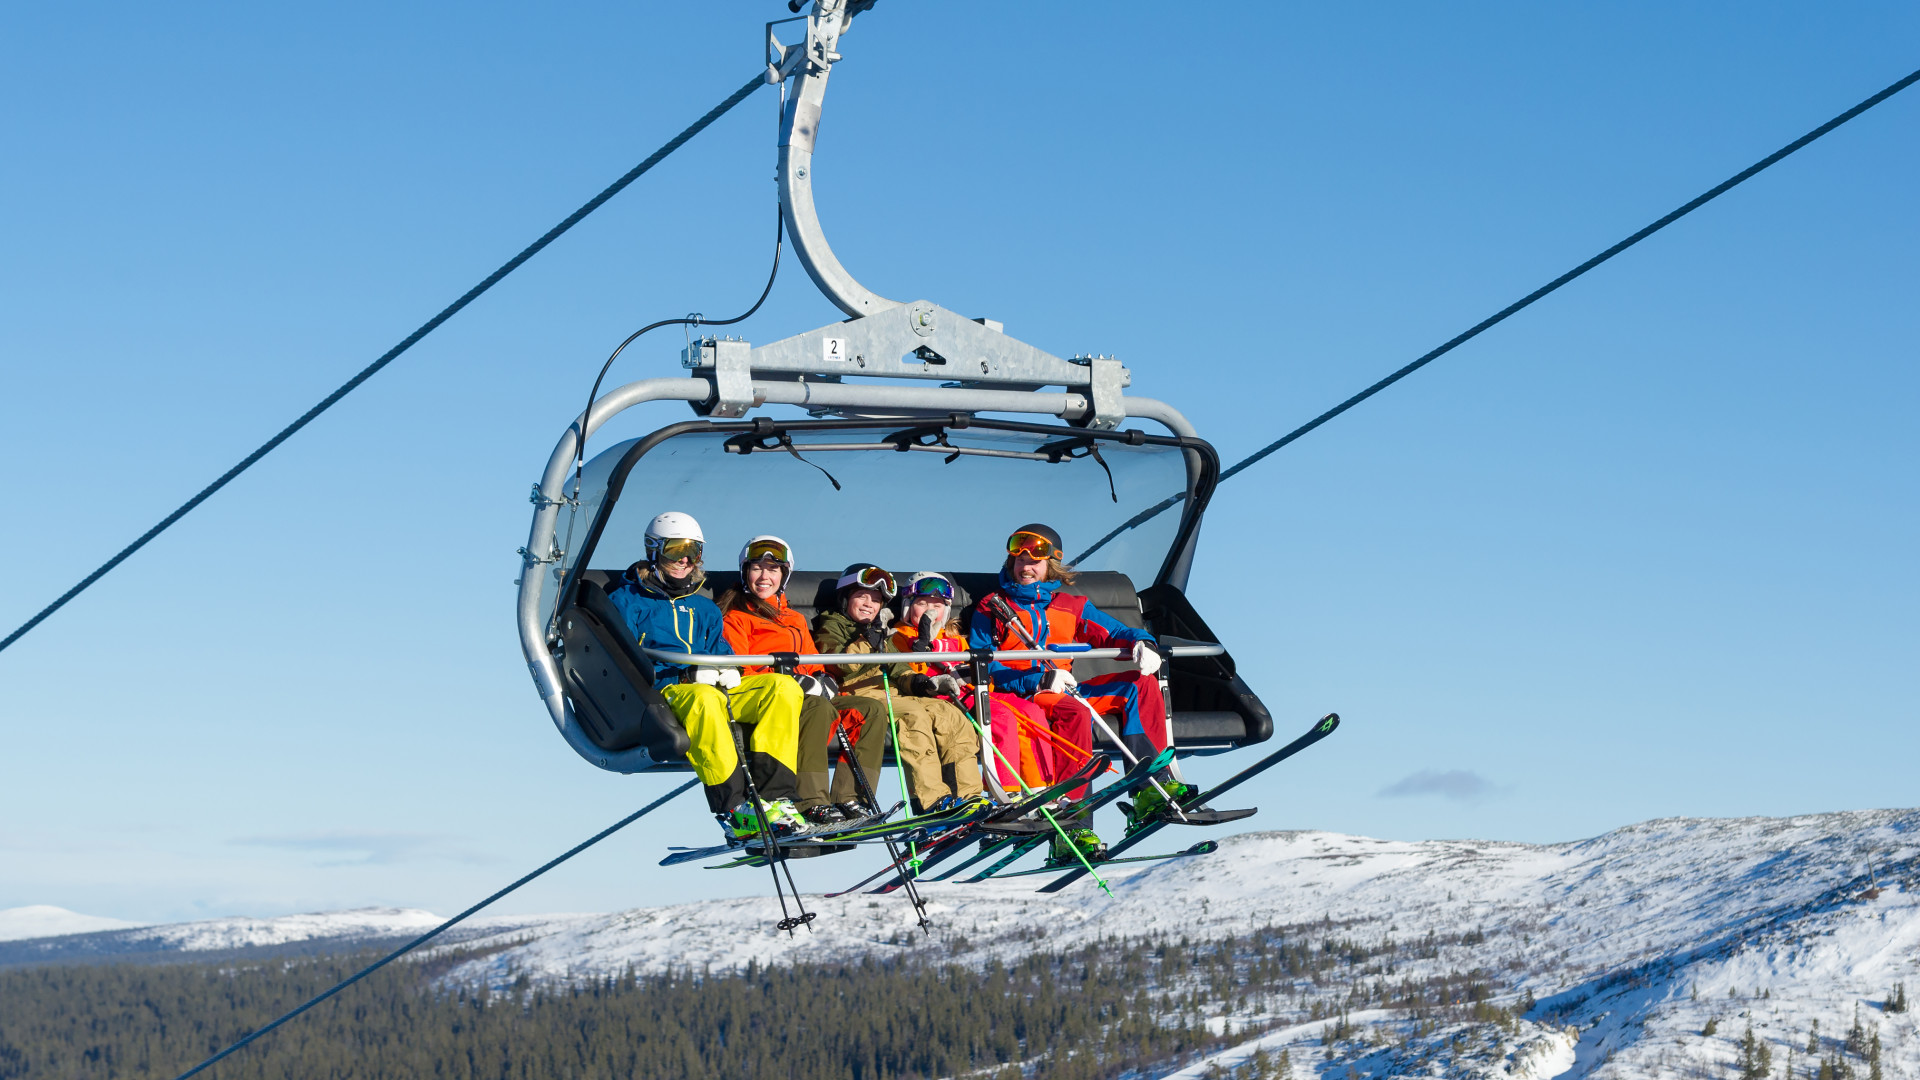 Family on a ski lift in Sweden